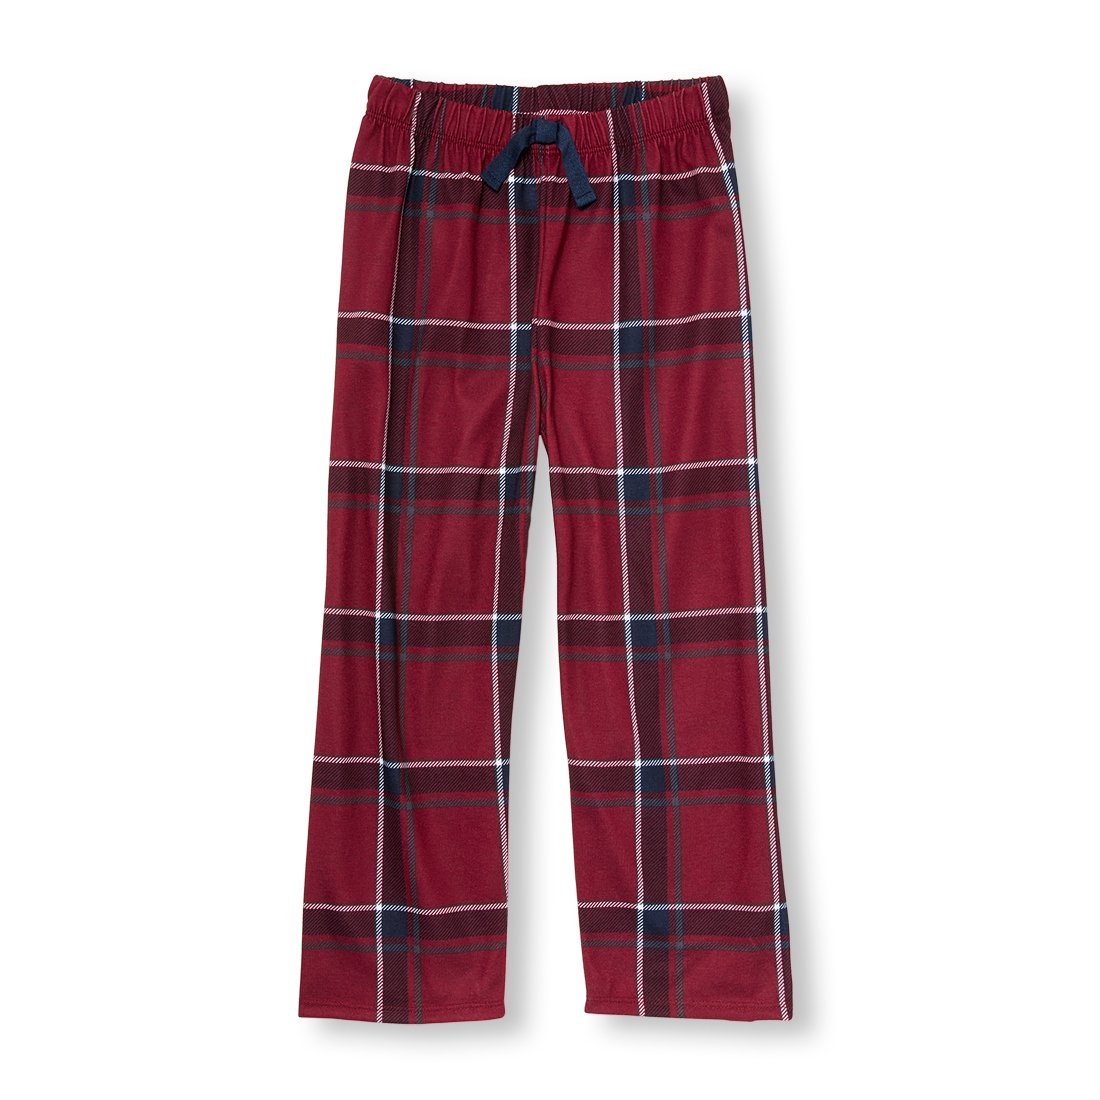 The Children's Place Boys' Big Pajama Pant The Children' s Place 2108559